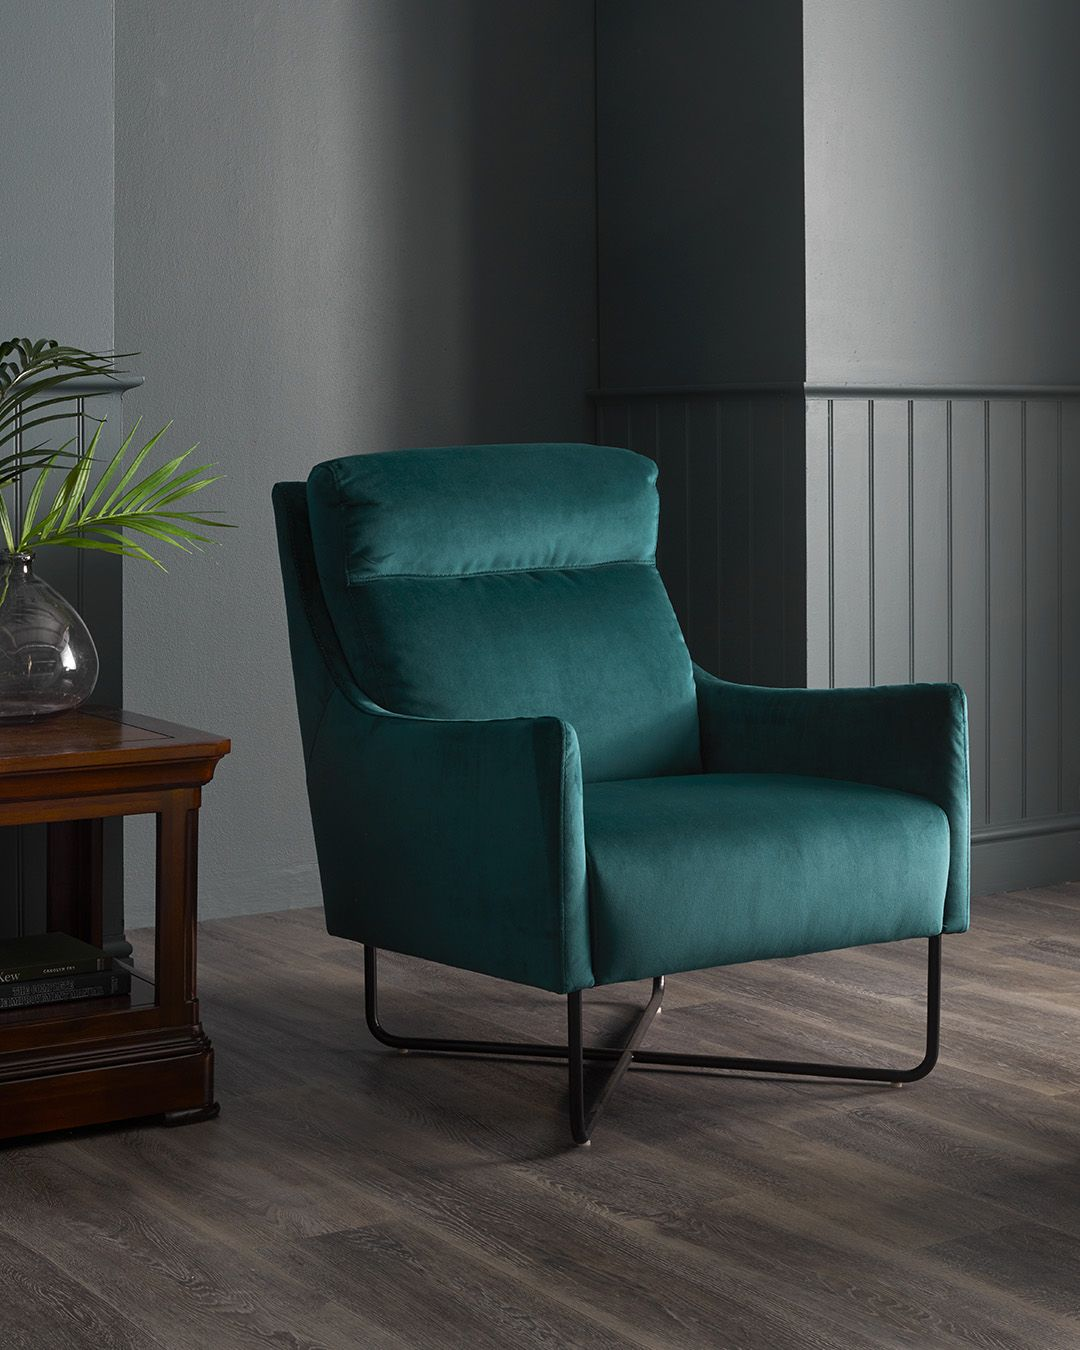 Pleasant Coco Teal Velvet Fabric Accent Chair In 2019 Accent Chairs Cjindustries Chair Design For Home Cjindustriesco